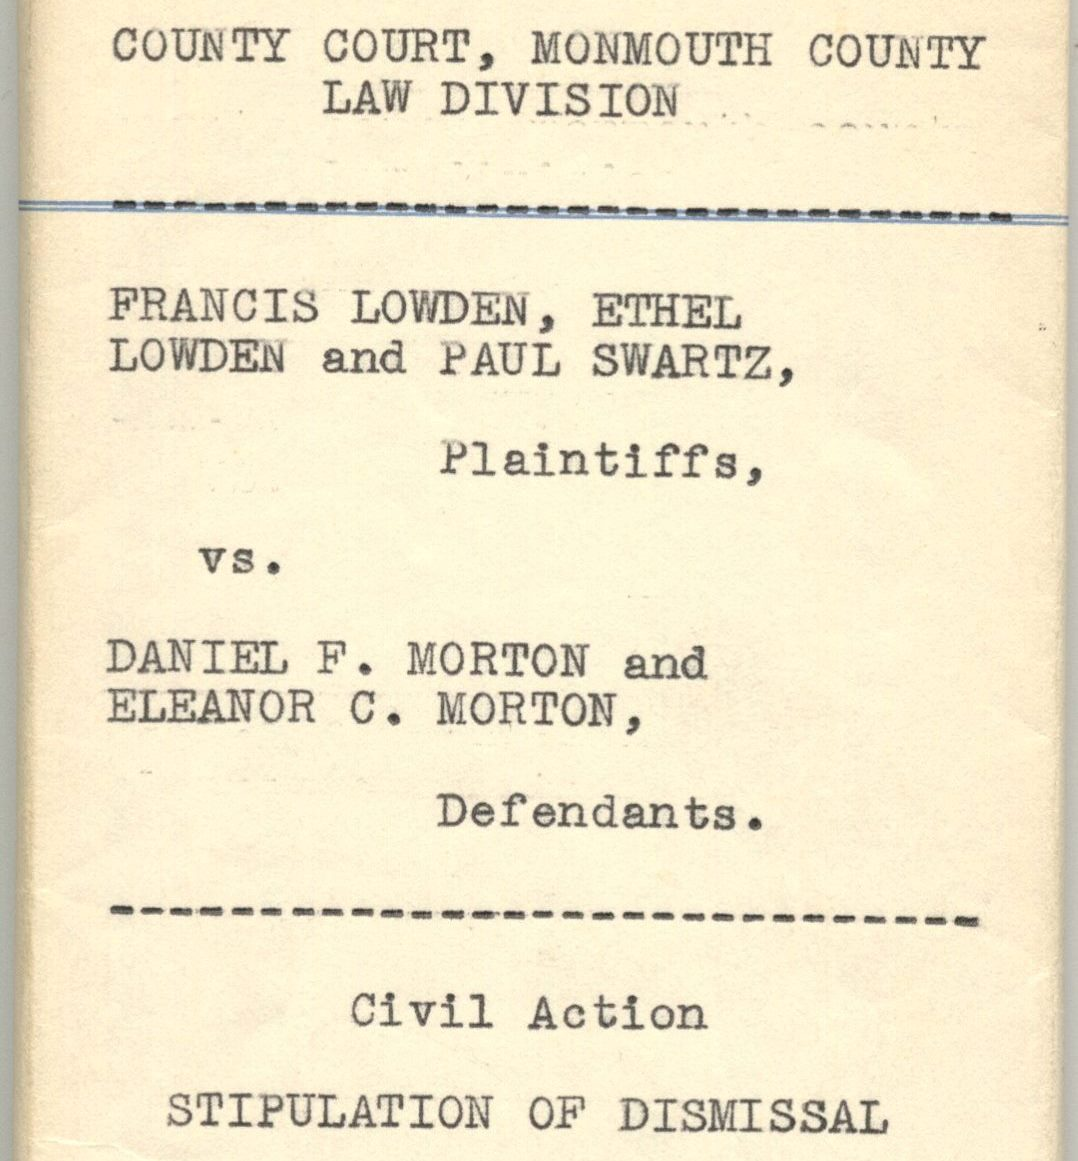 County Court Civil part image